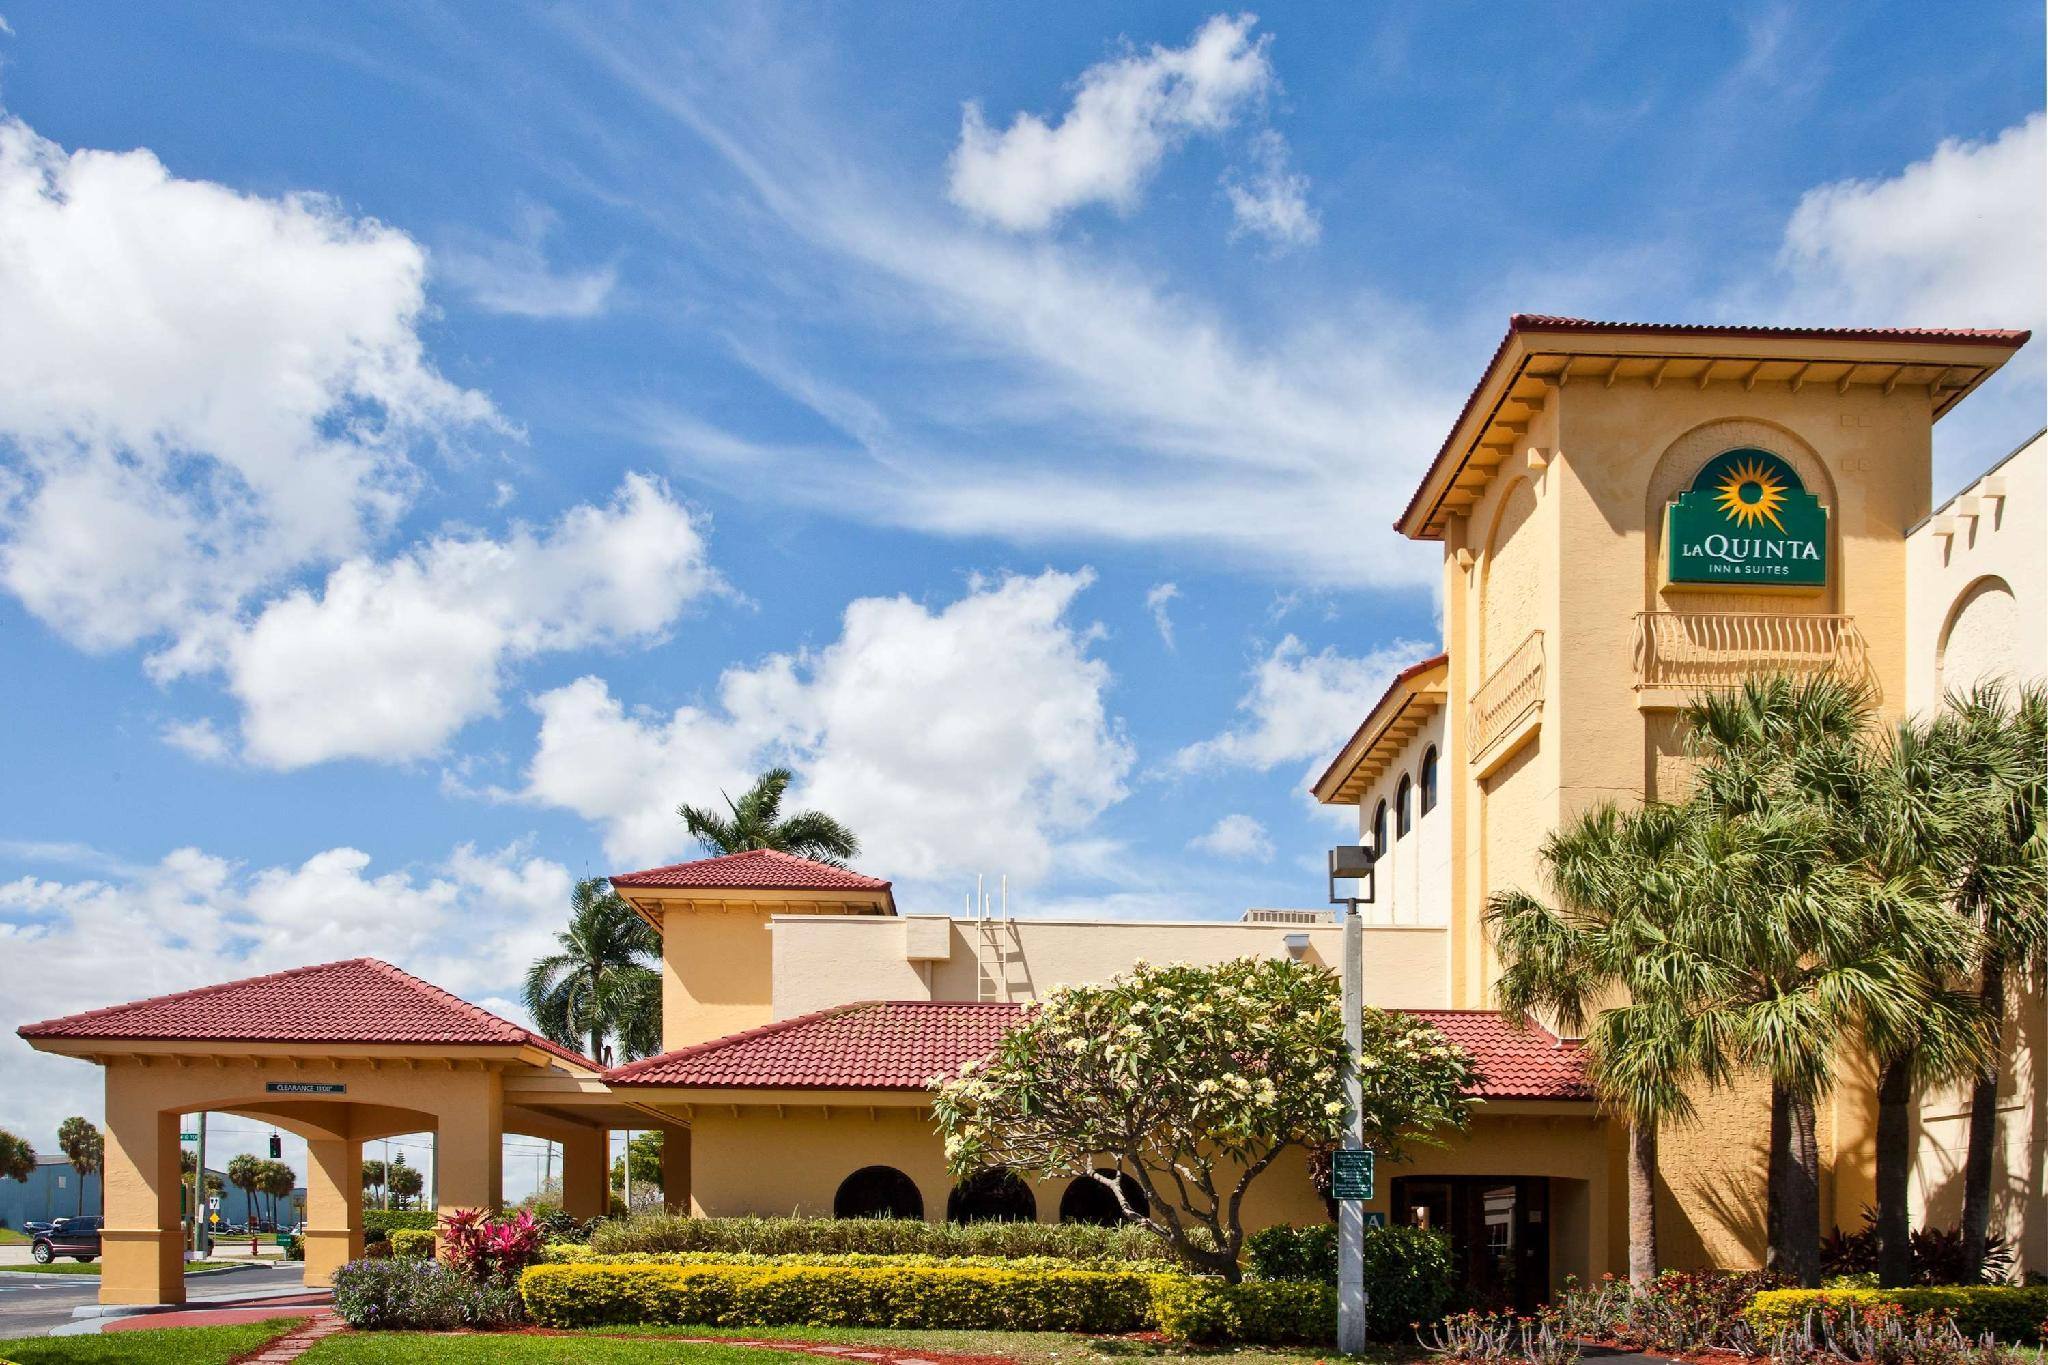 La Quinta Inn And Suites By Wyndham Ft Lauderdale Cypress Cr